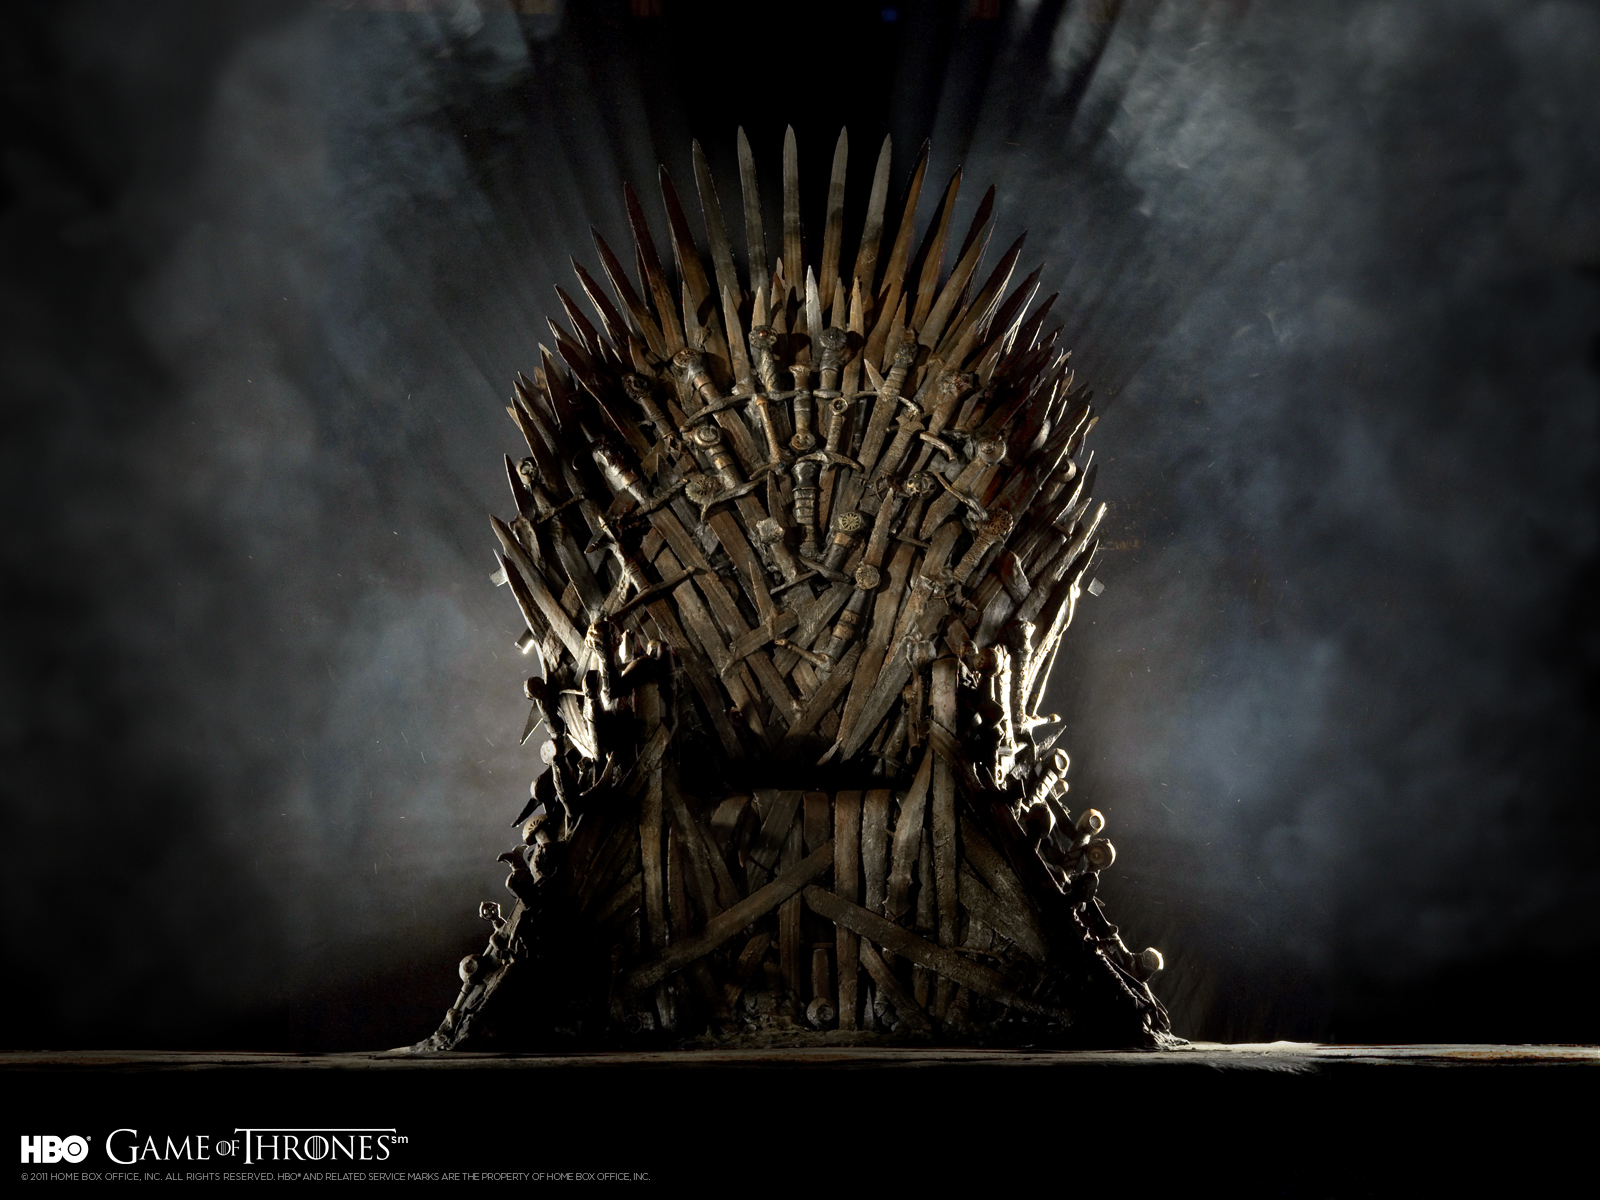 Game Of Thrones Wallpapers HD 22PW466   4USkY 1600x1200